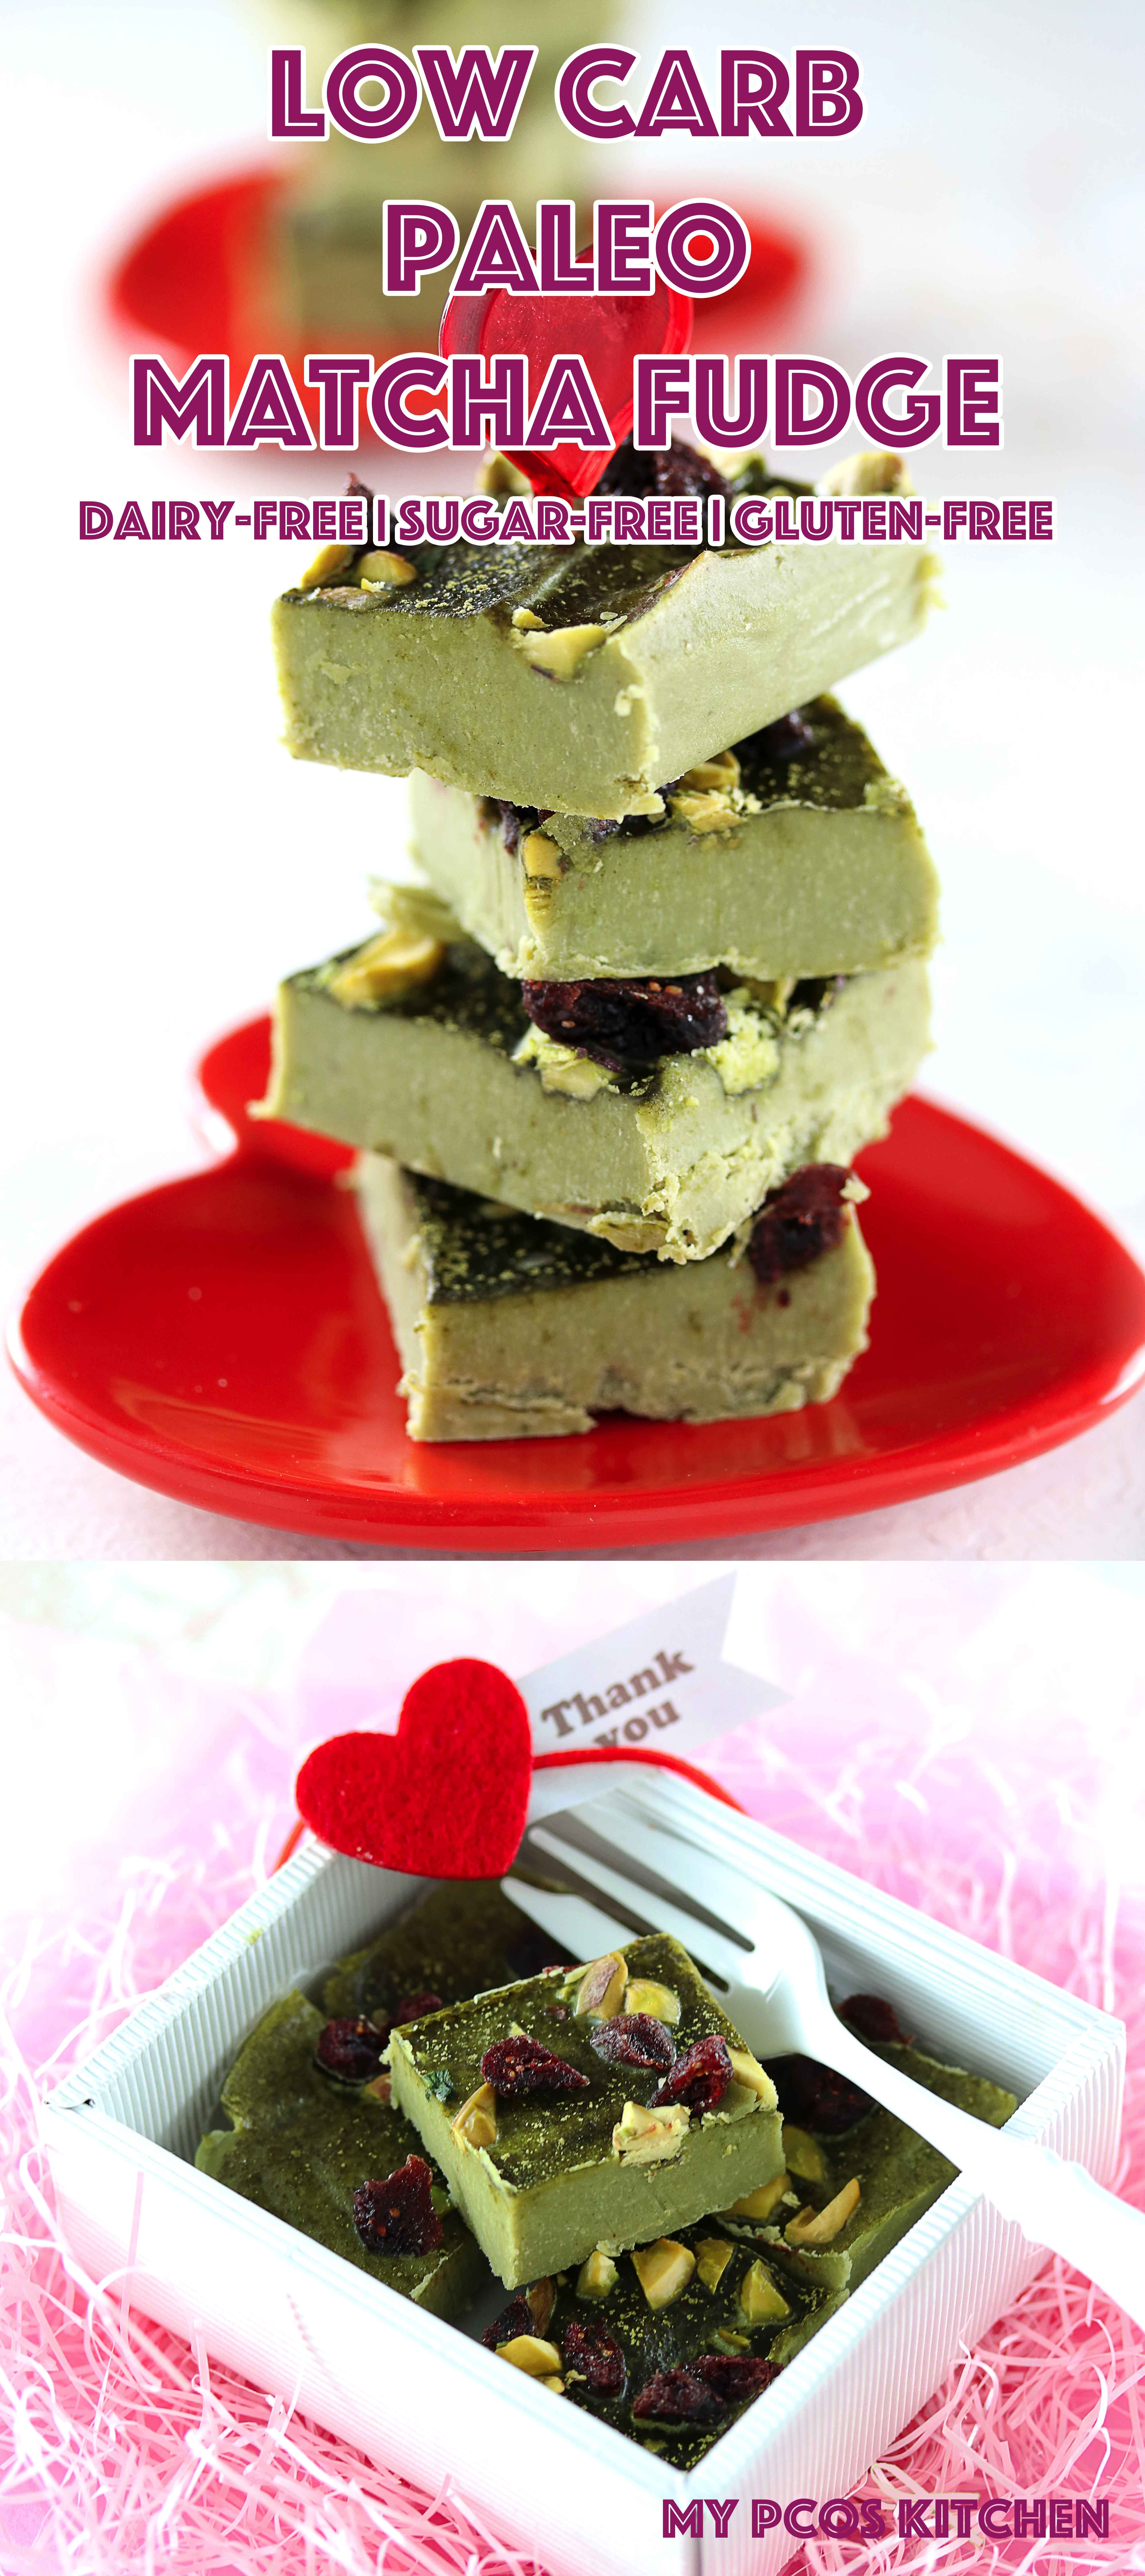 Low Carb Paleo Green Tea Matcha Fudge - My PCOS Kitchen - Sugar-free and dairy-free green tea fudge made with delicious creamy cashew butter.